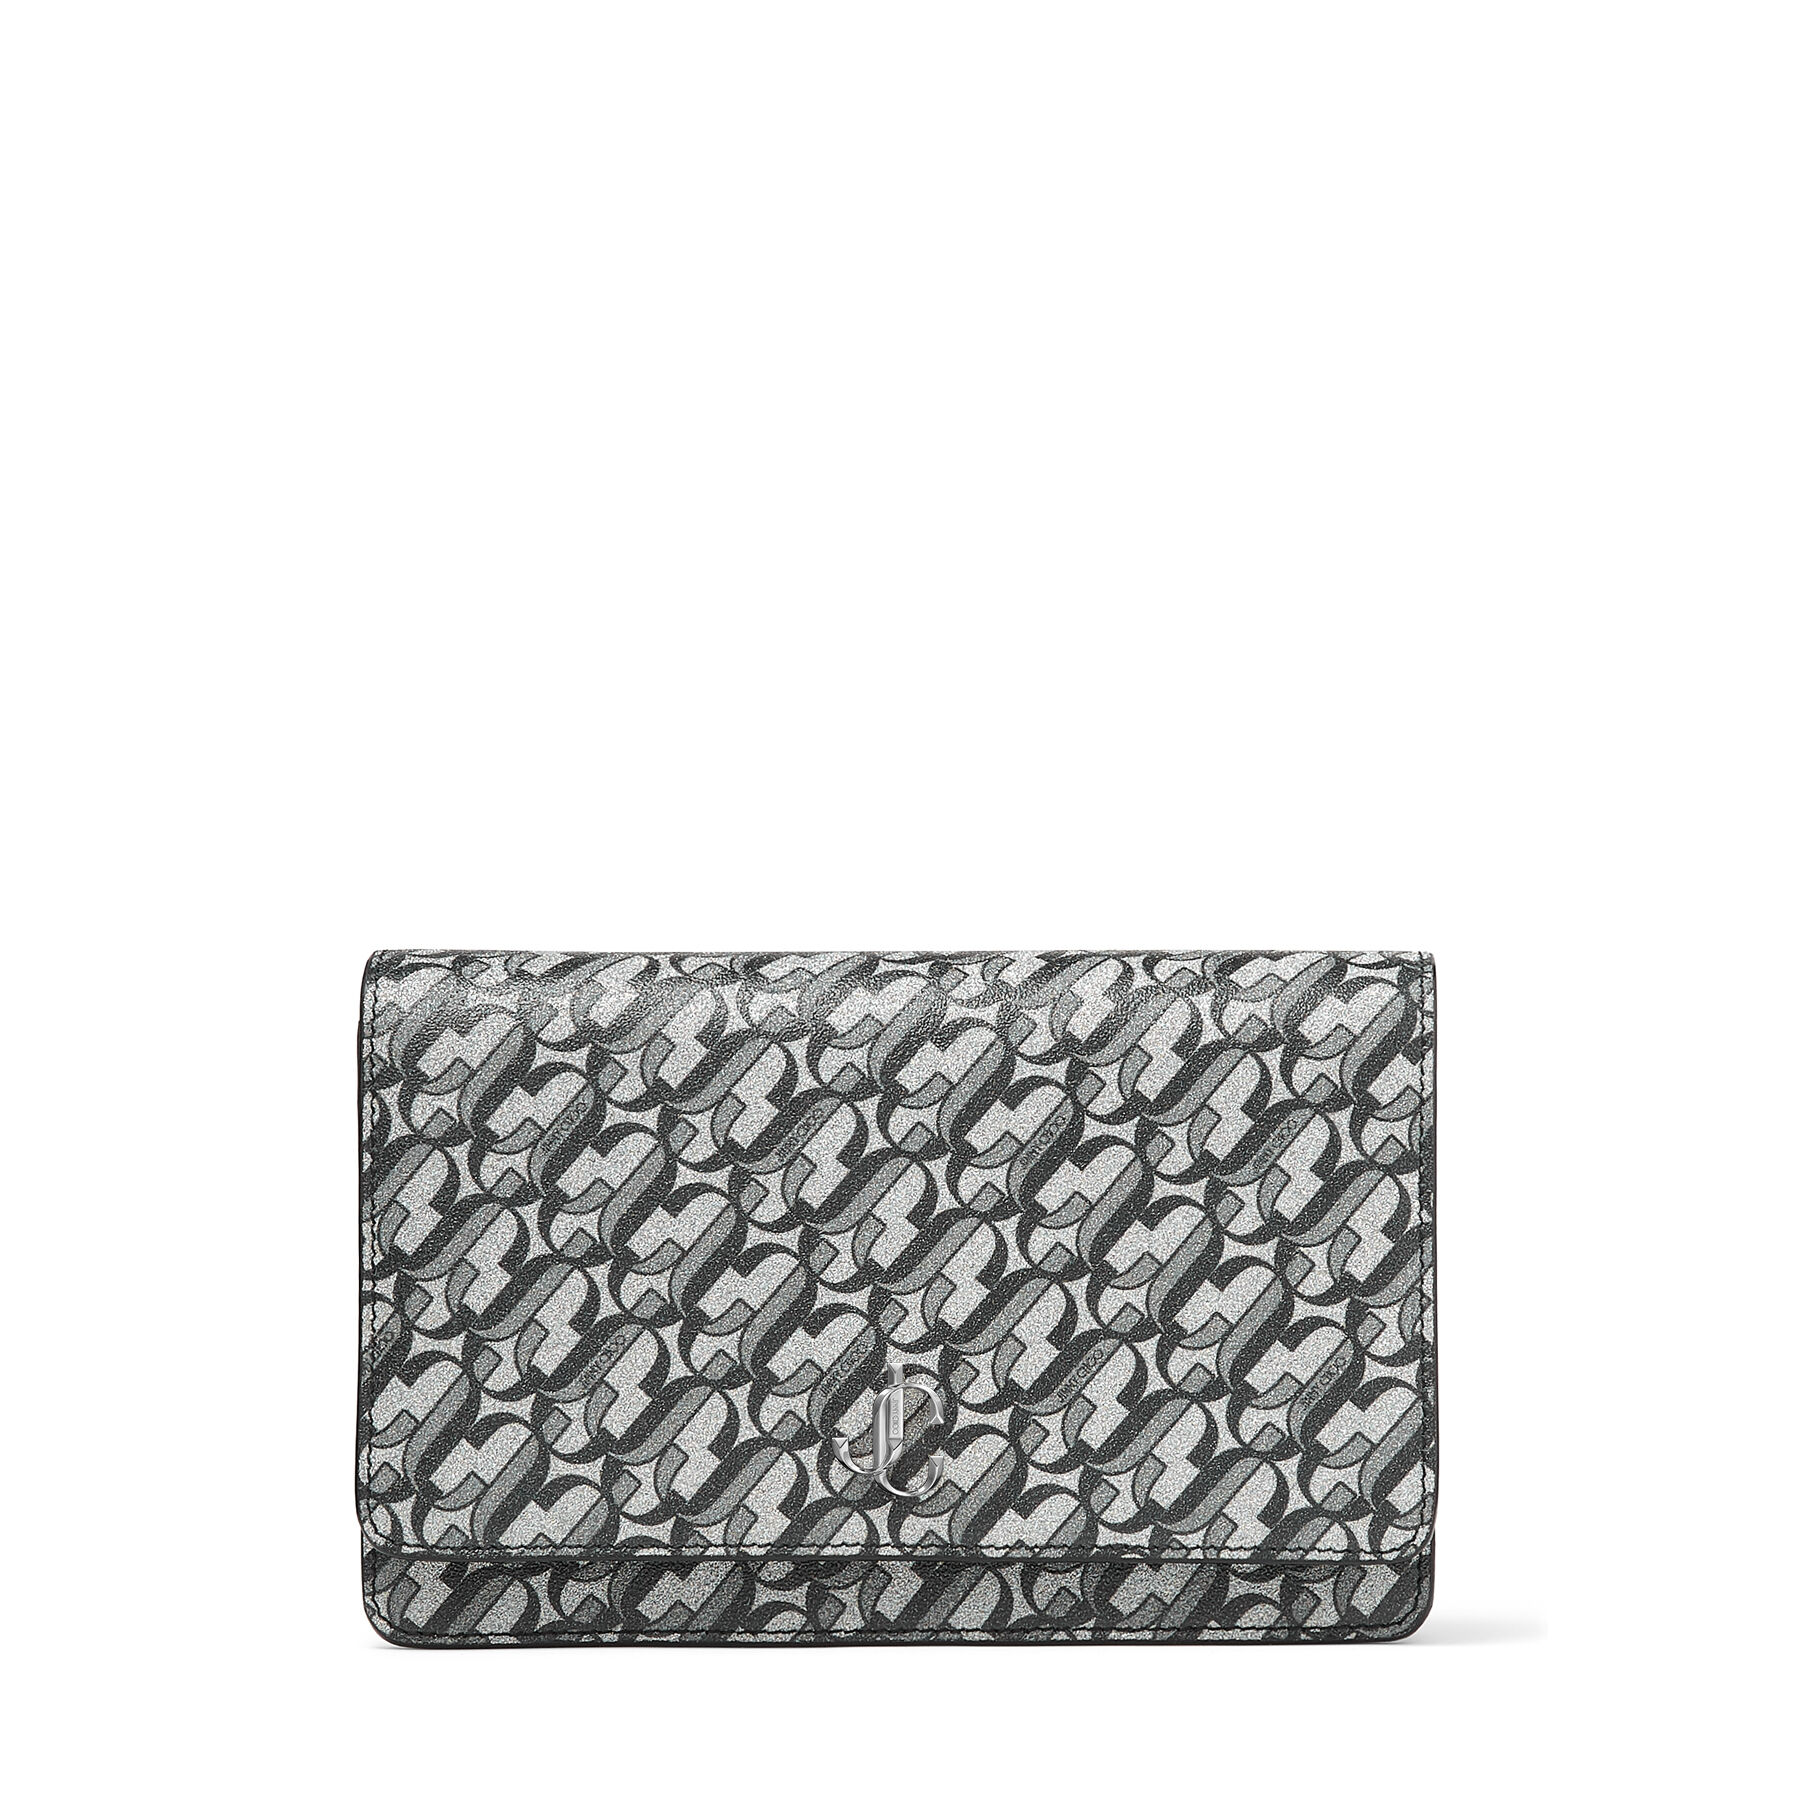 Jimmy ChooPALACE Silver and Black Galactic Glitter Fabric Chain Wallet